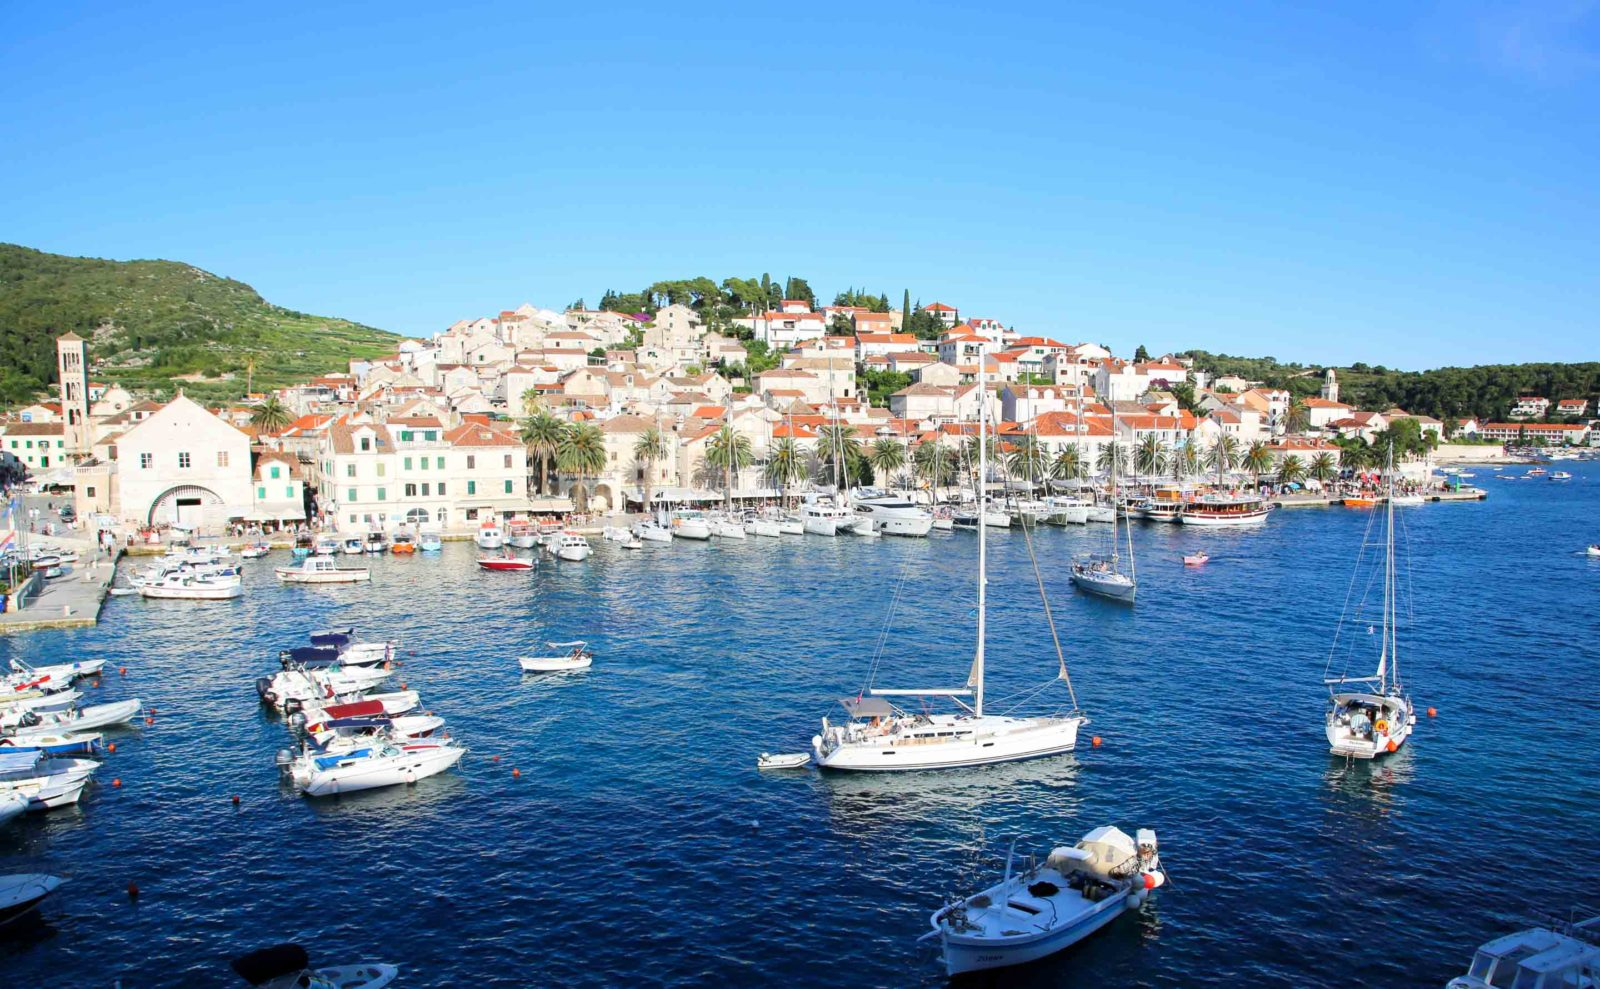 coastal town of dalmatian in croatia